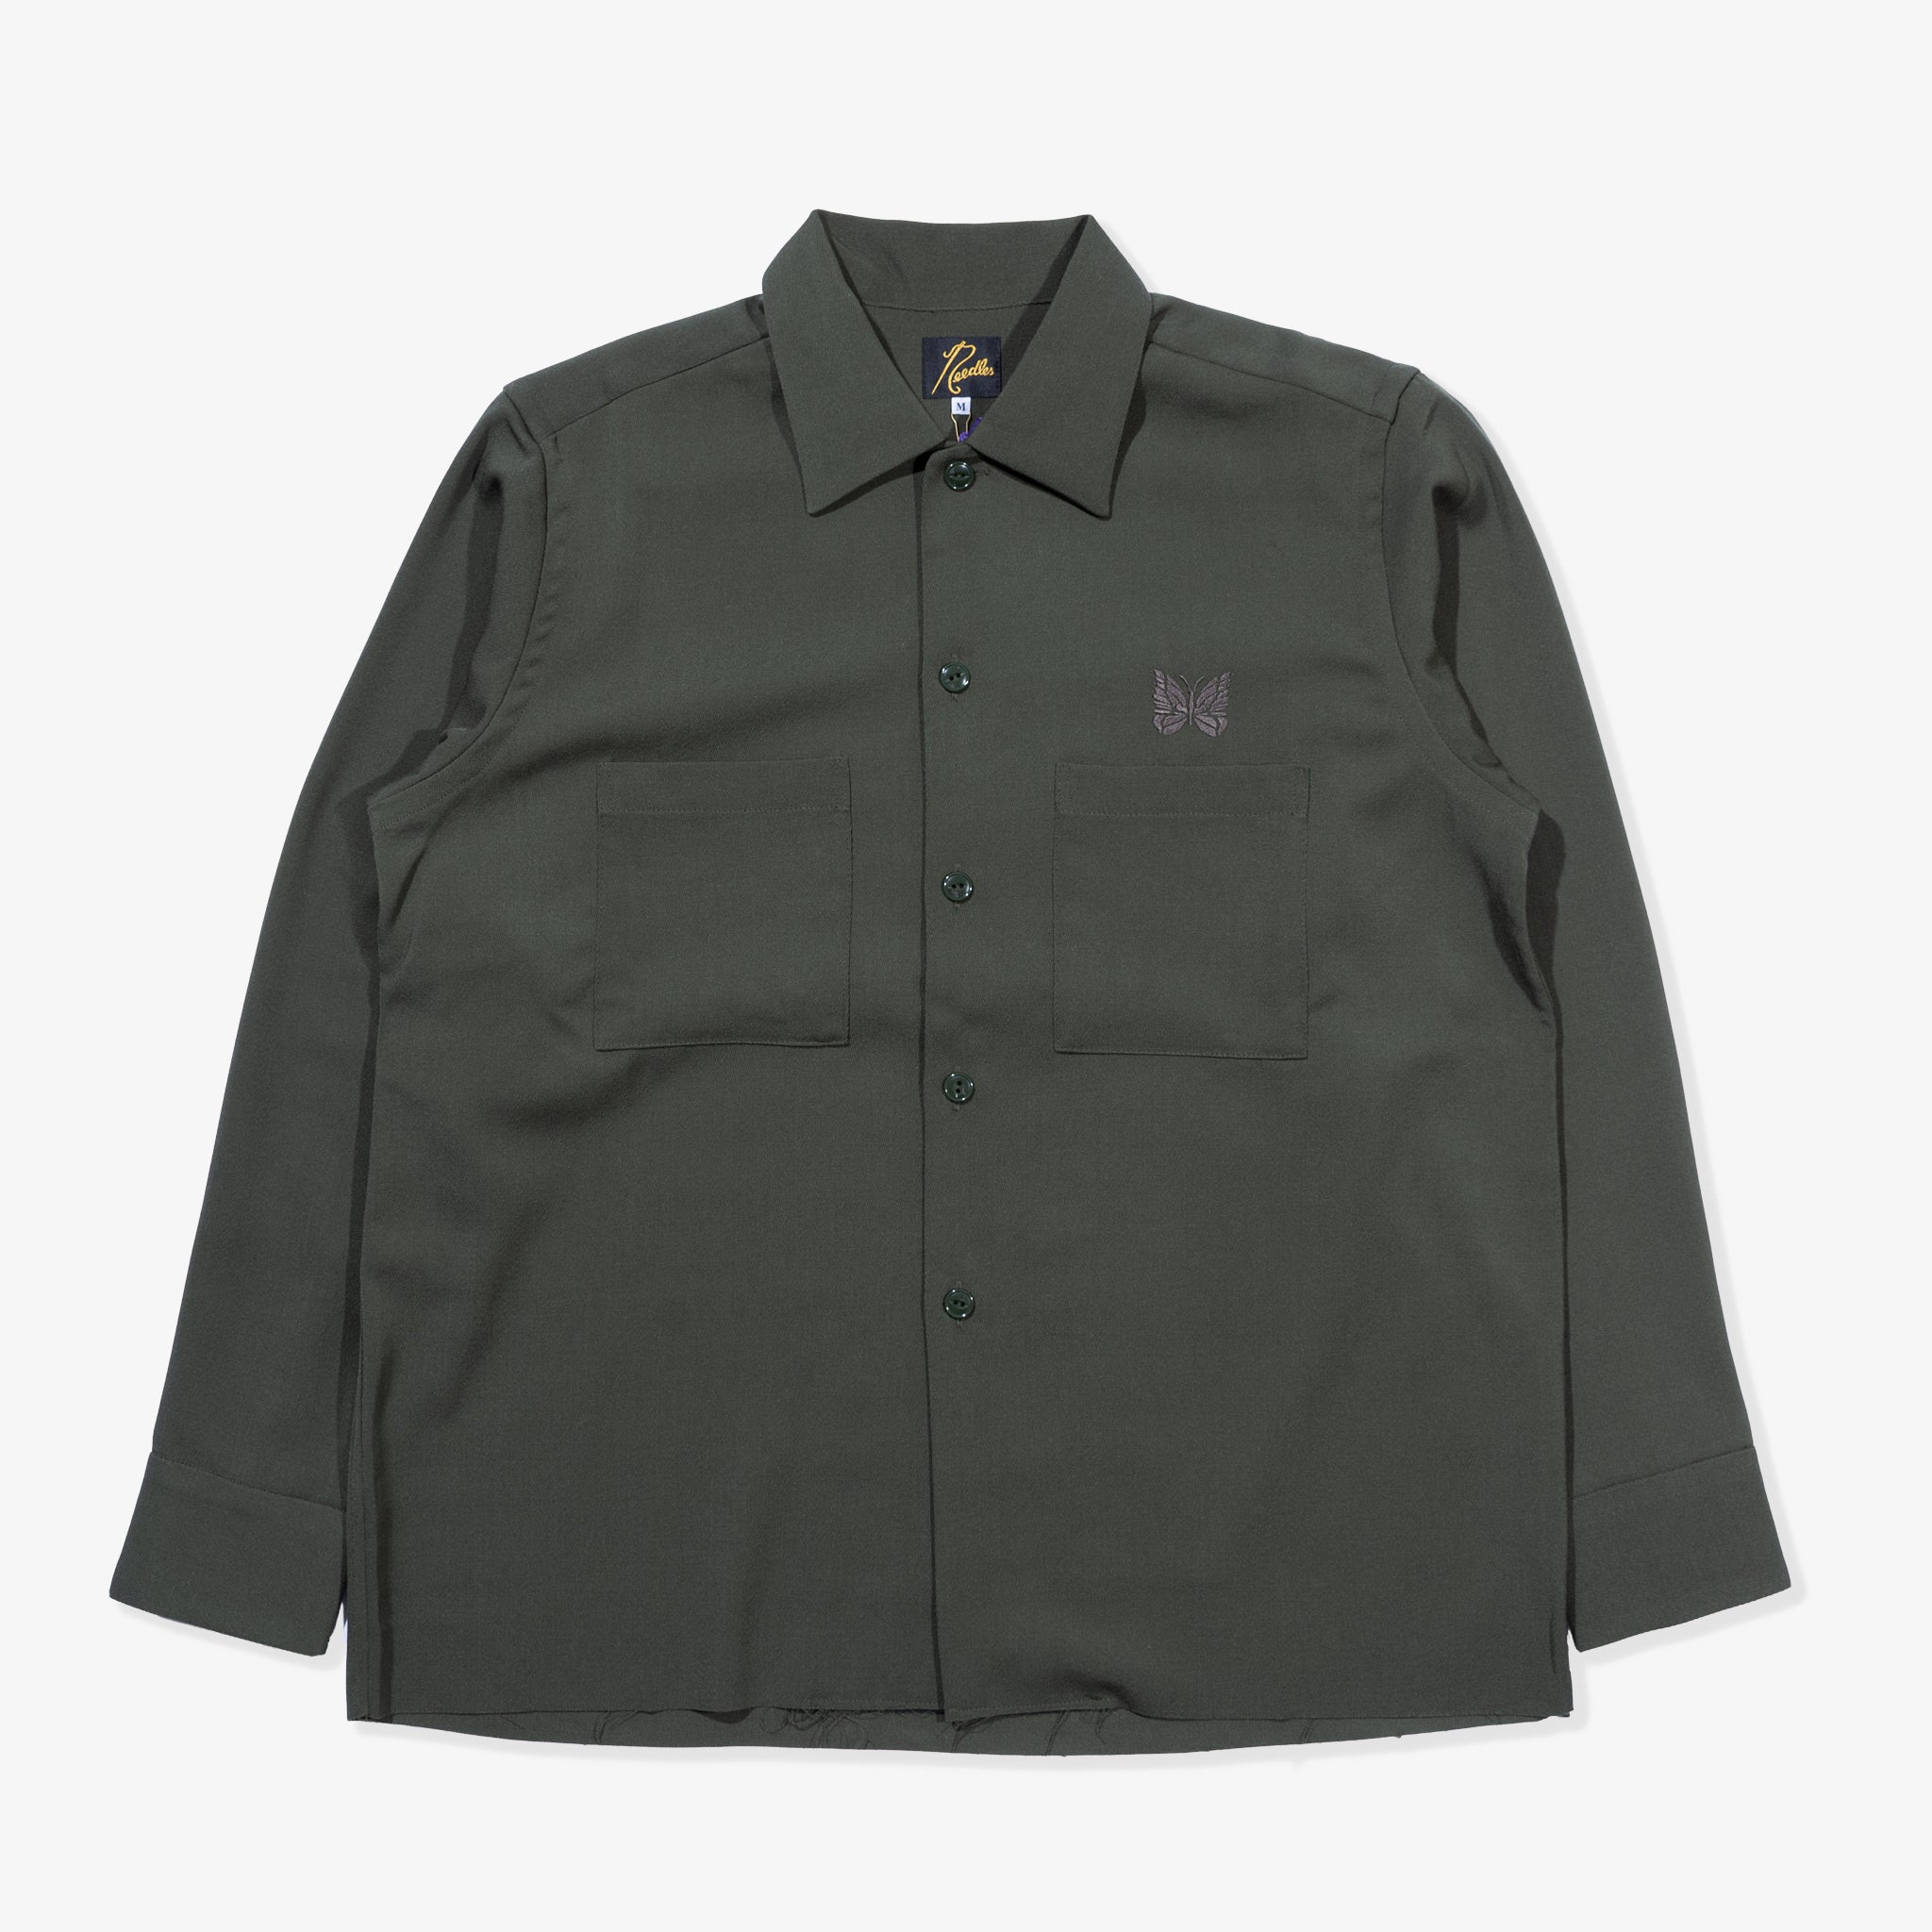 C.O.B. One-Up Shirt (Olive)